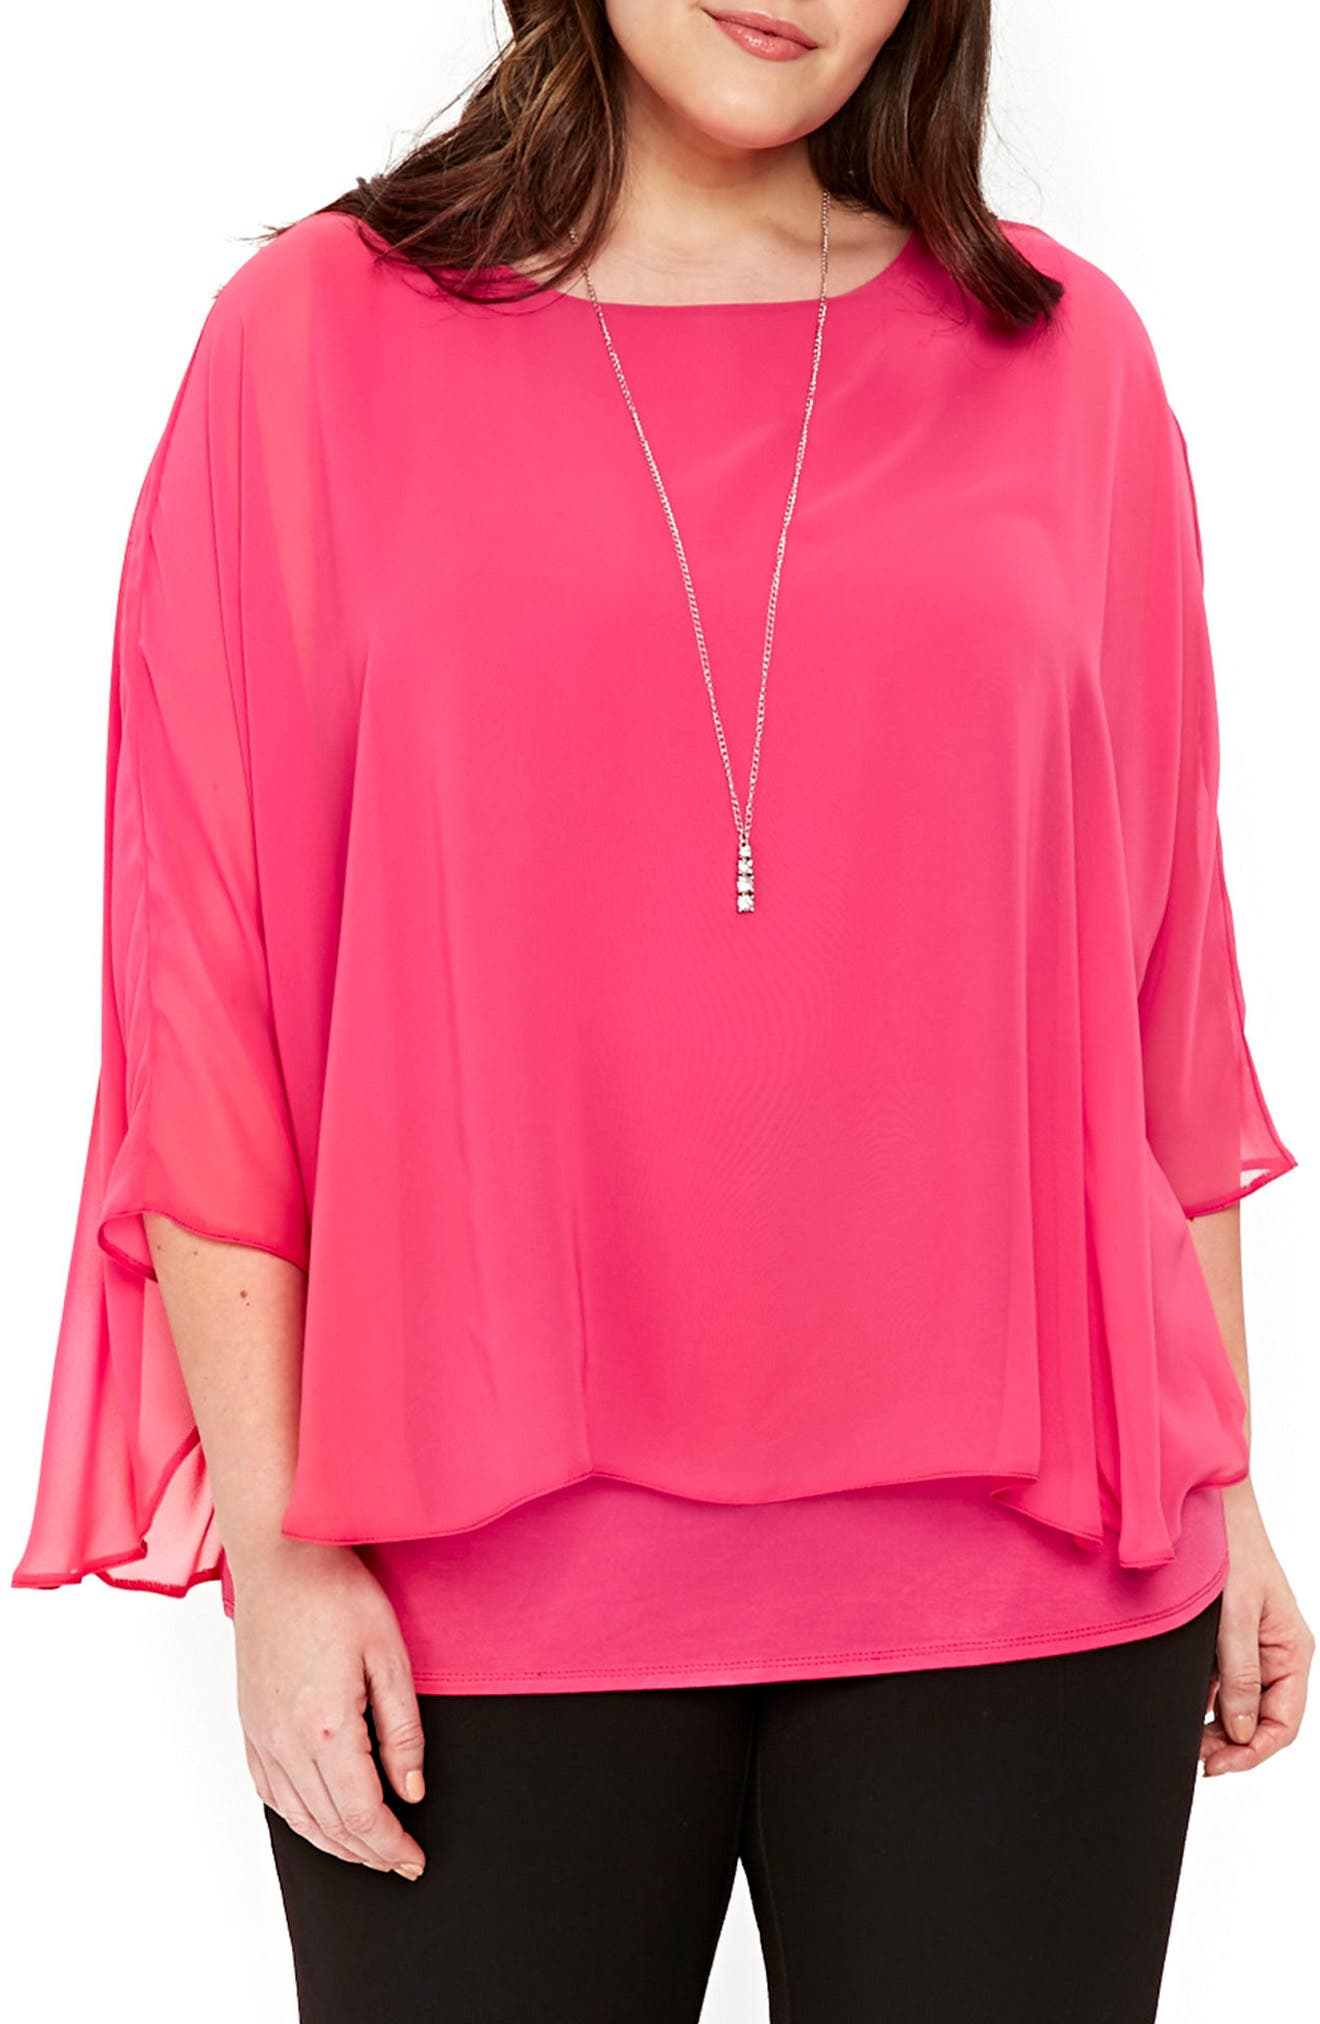 Evans Overlay Top with Necklace (Plus Size)